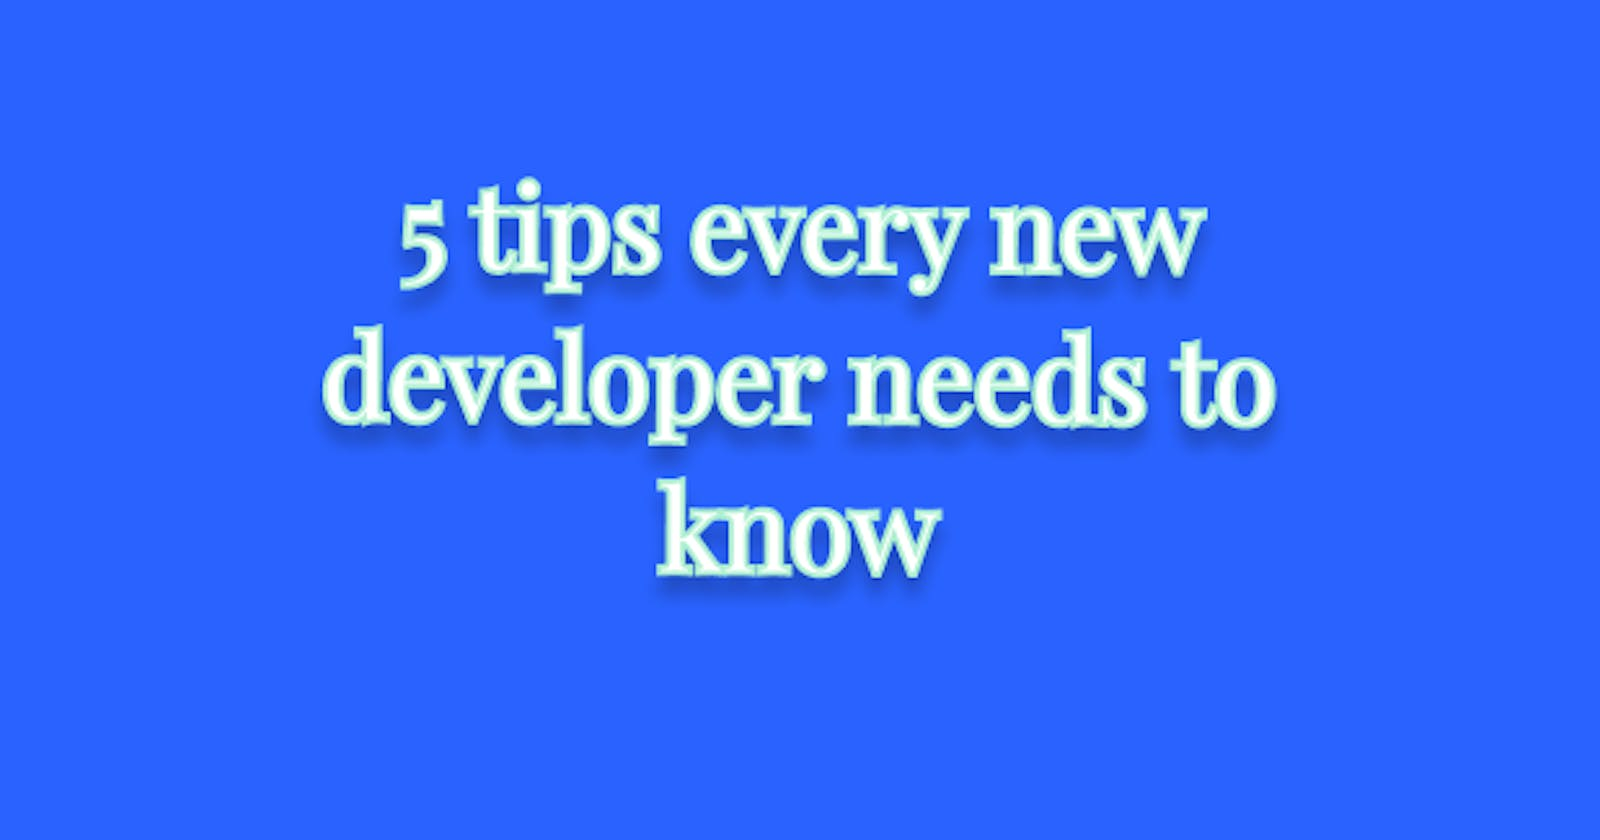 5 tips every new developer needs to know